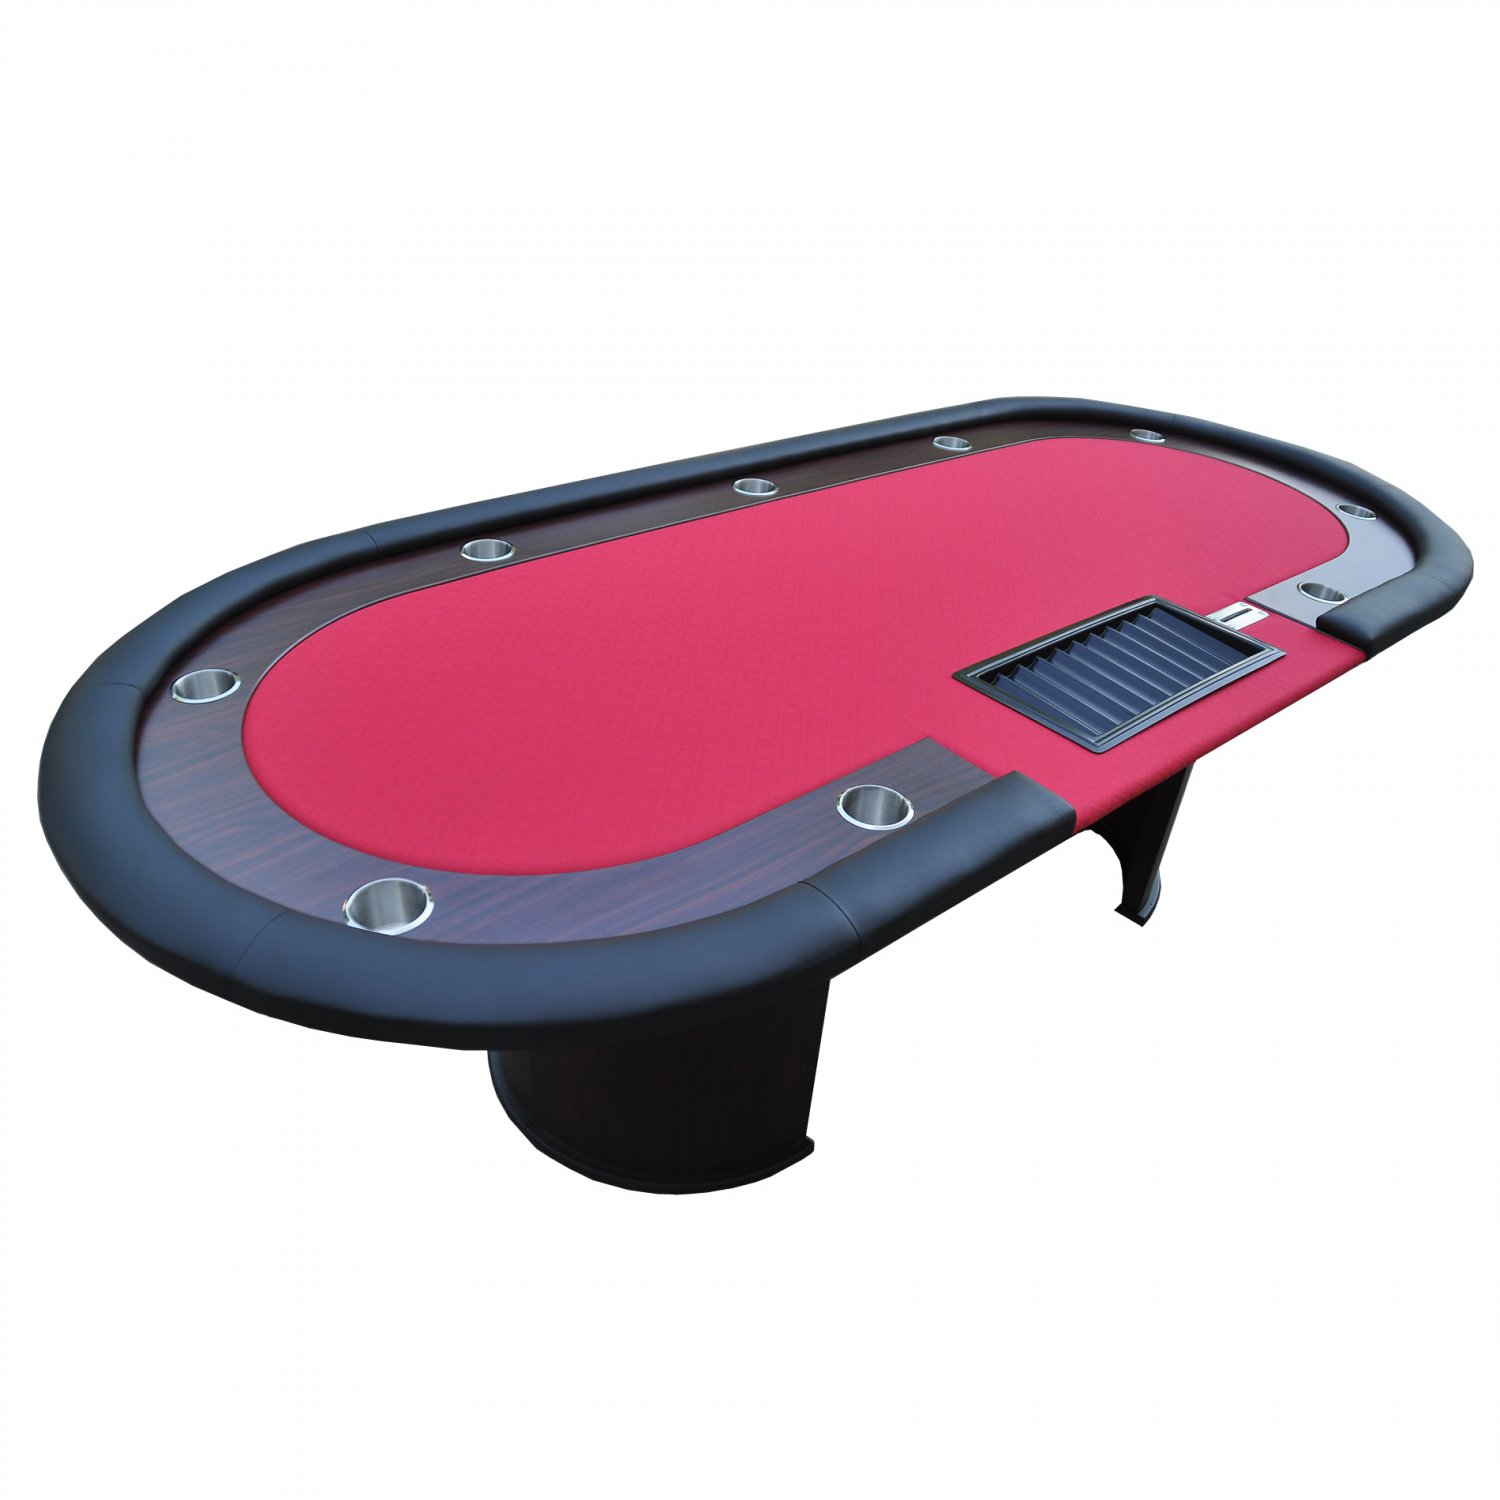 """96"""" 10 Players Texas Hold'em Wooden Legs Poker Table With Drop Box Red Ver.2(Ship US Only)#16367-R#"""